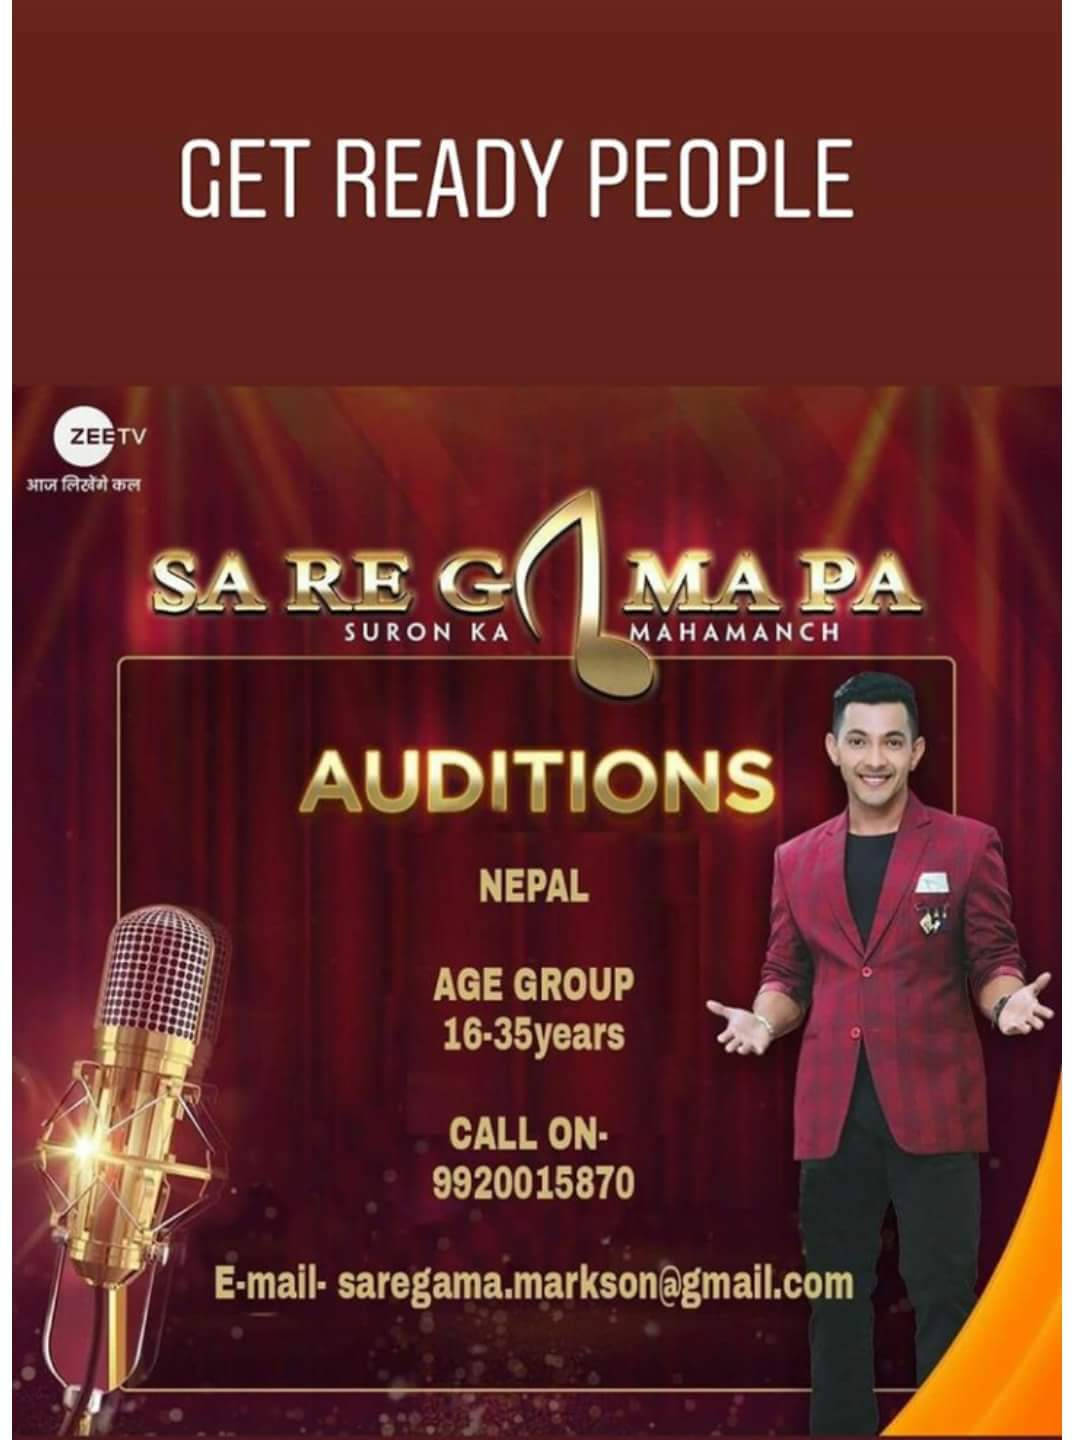 Photo of Sa Re Ga Ma Pa Happening in Nepal